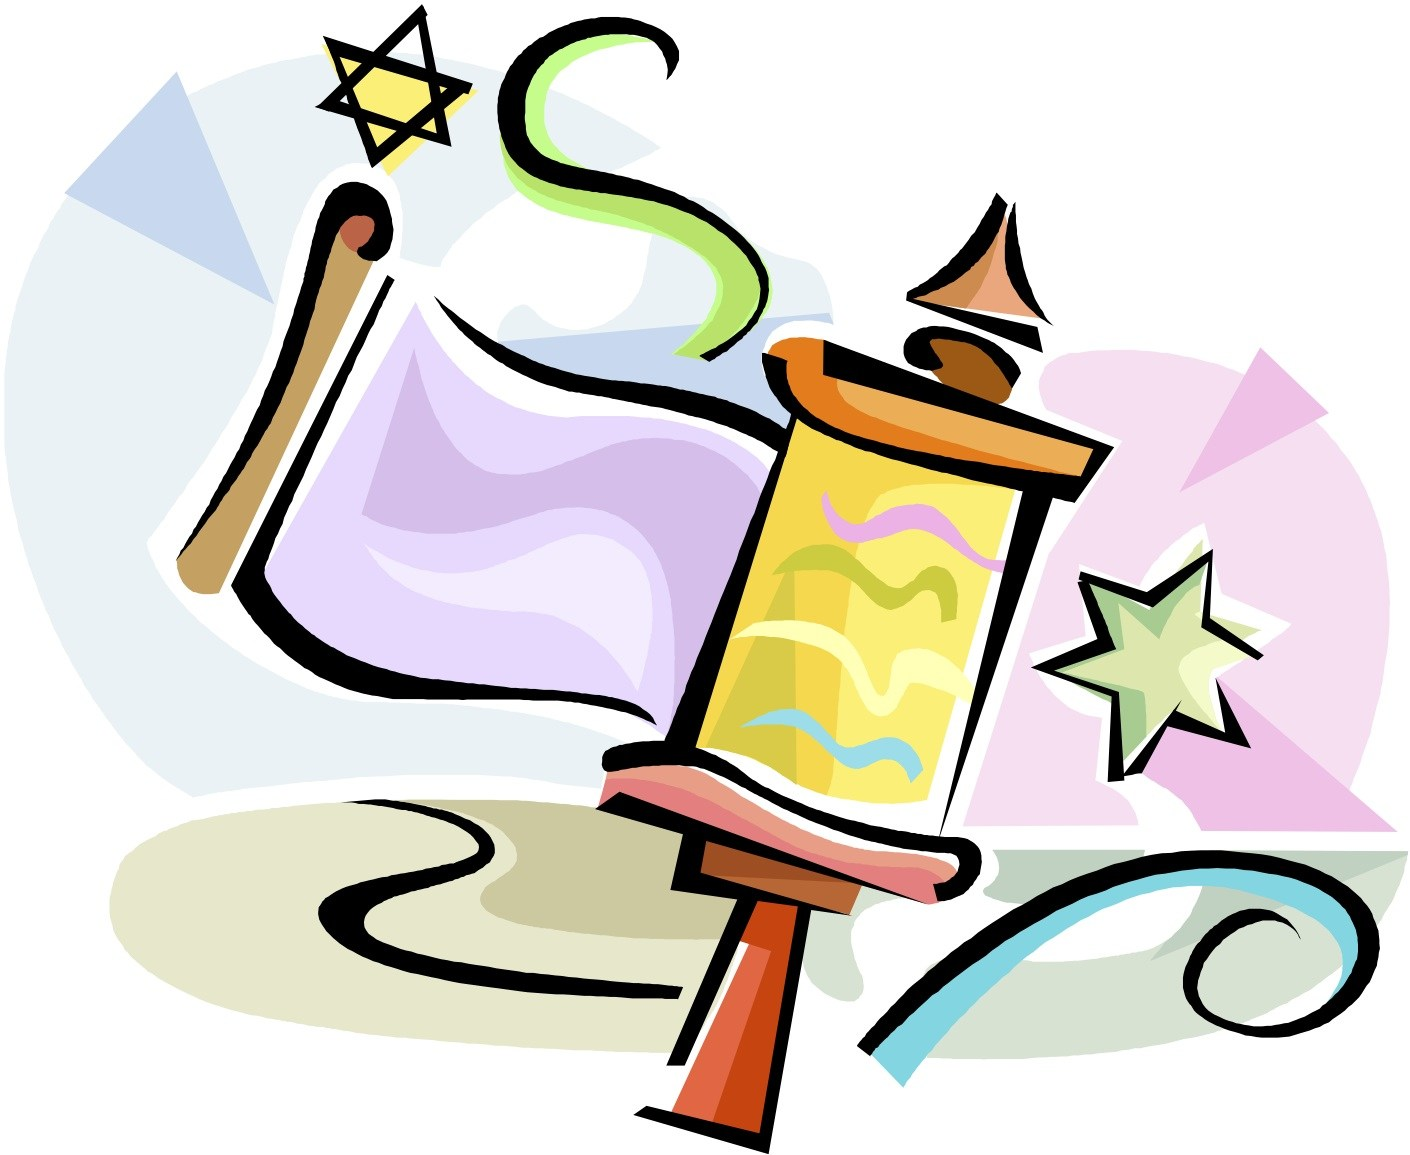 Free purim clipart 5 » Clipart Portal.